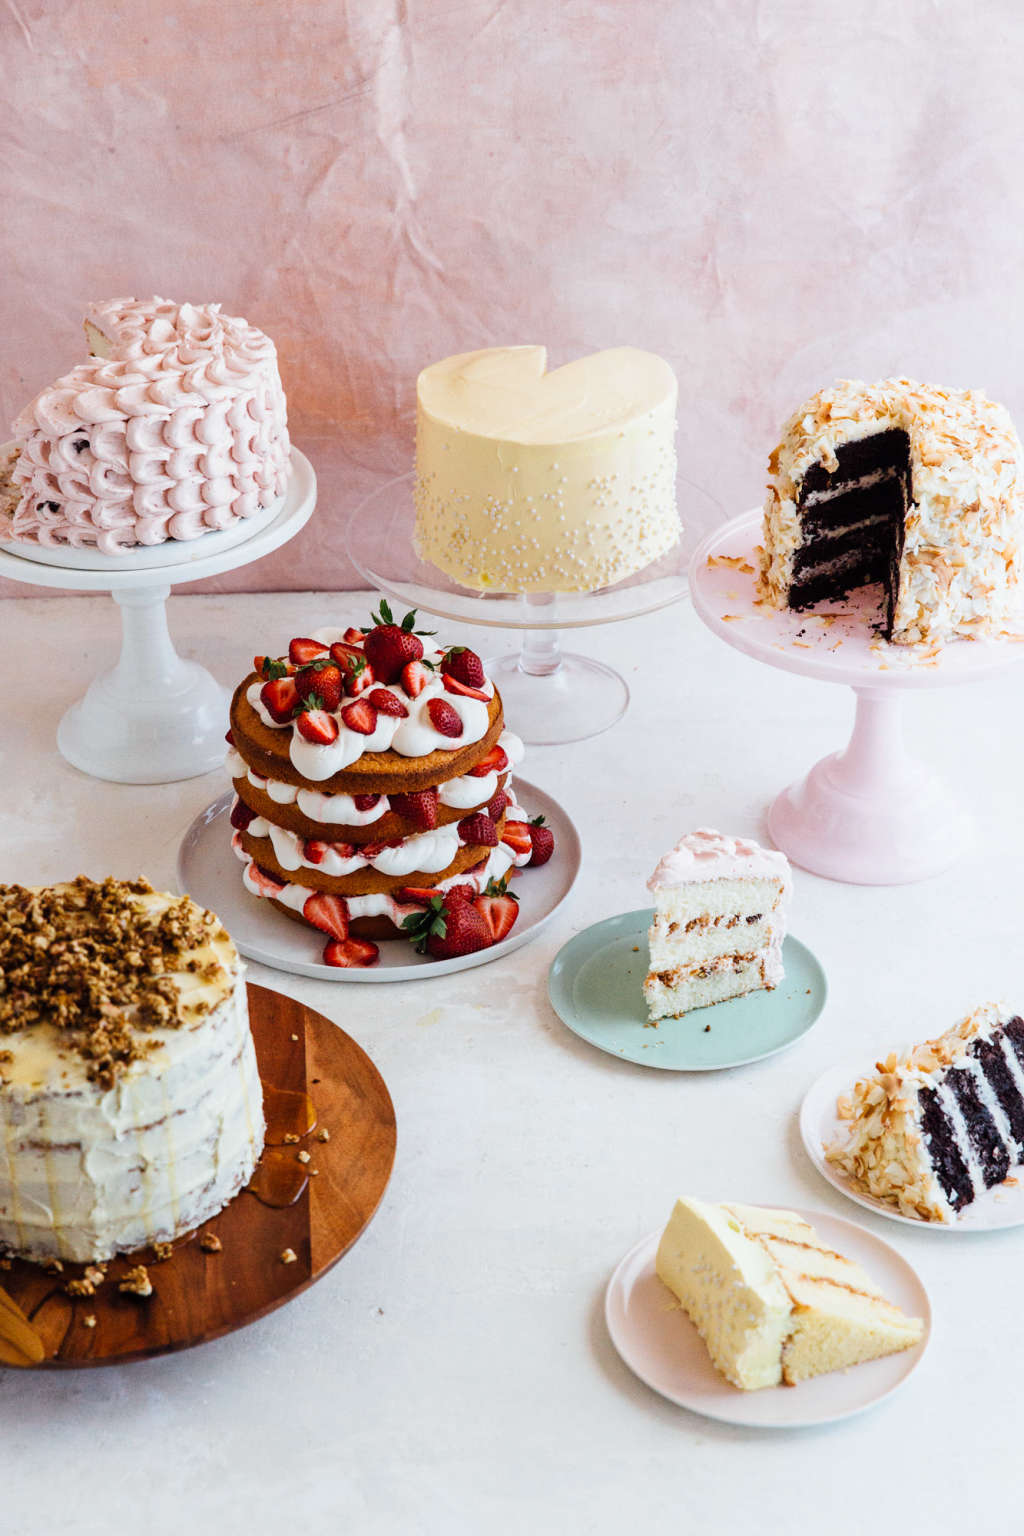 These 5 Stylish Layer Cakes Will Make Any Party More Magical